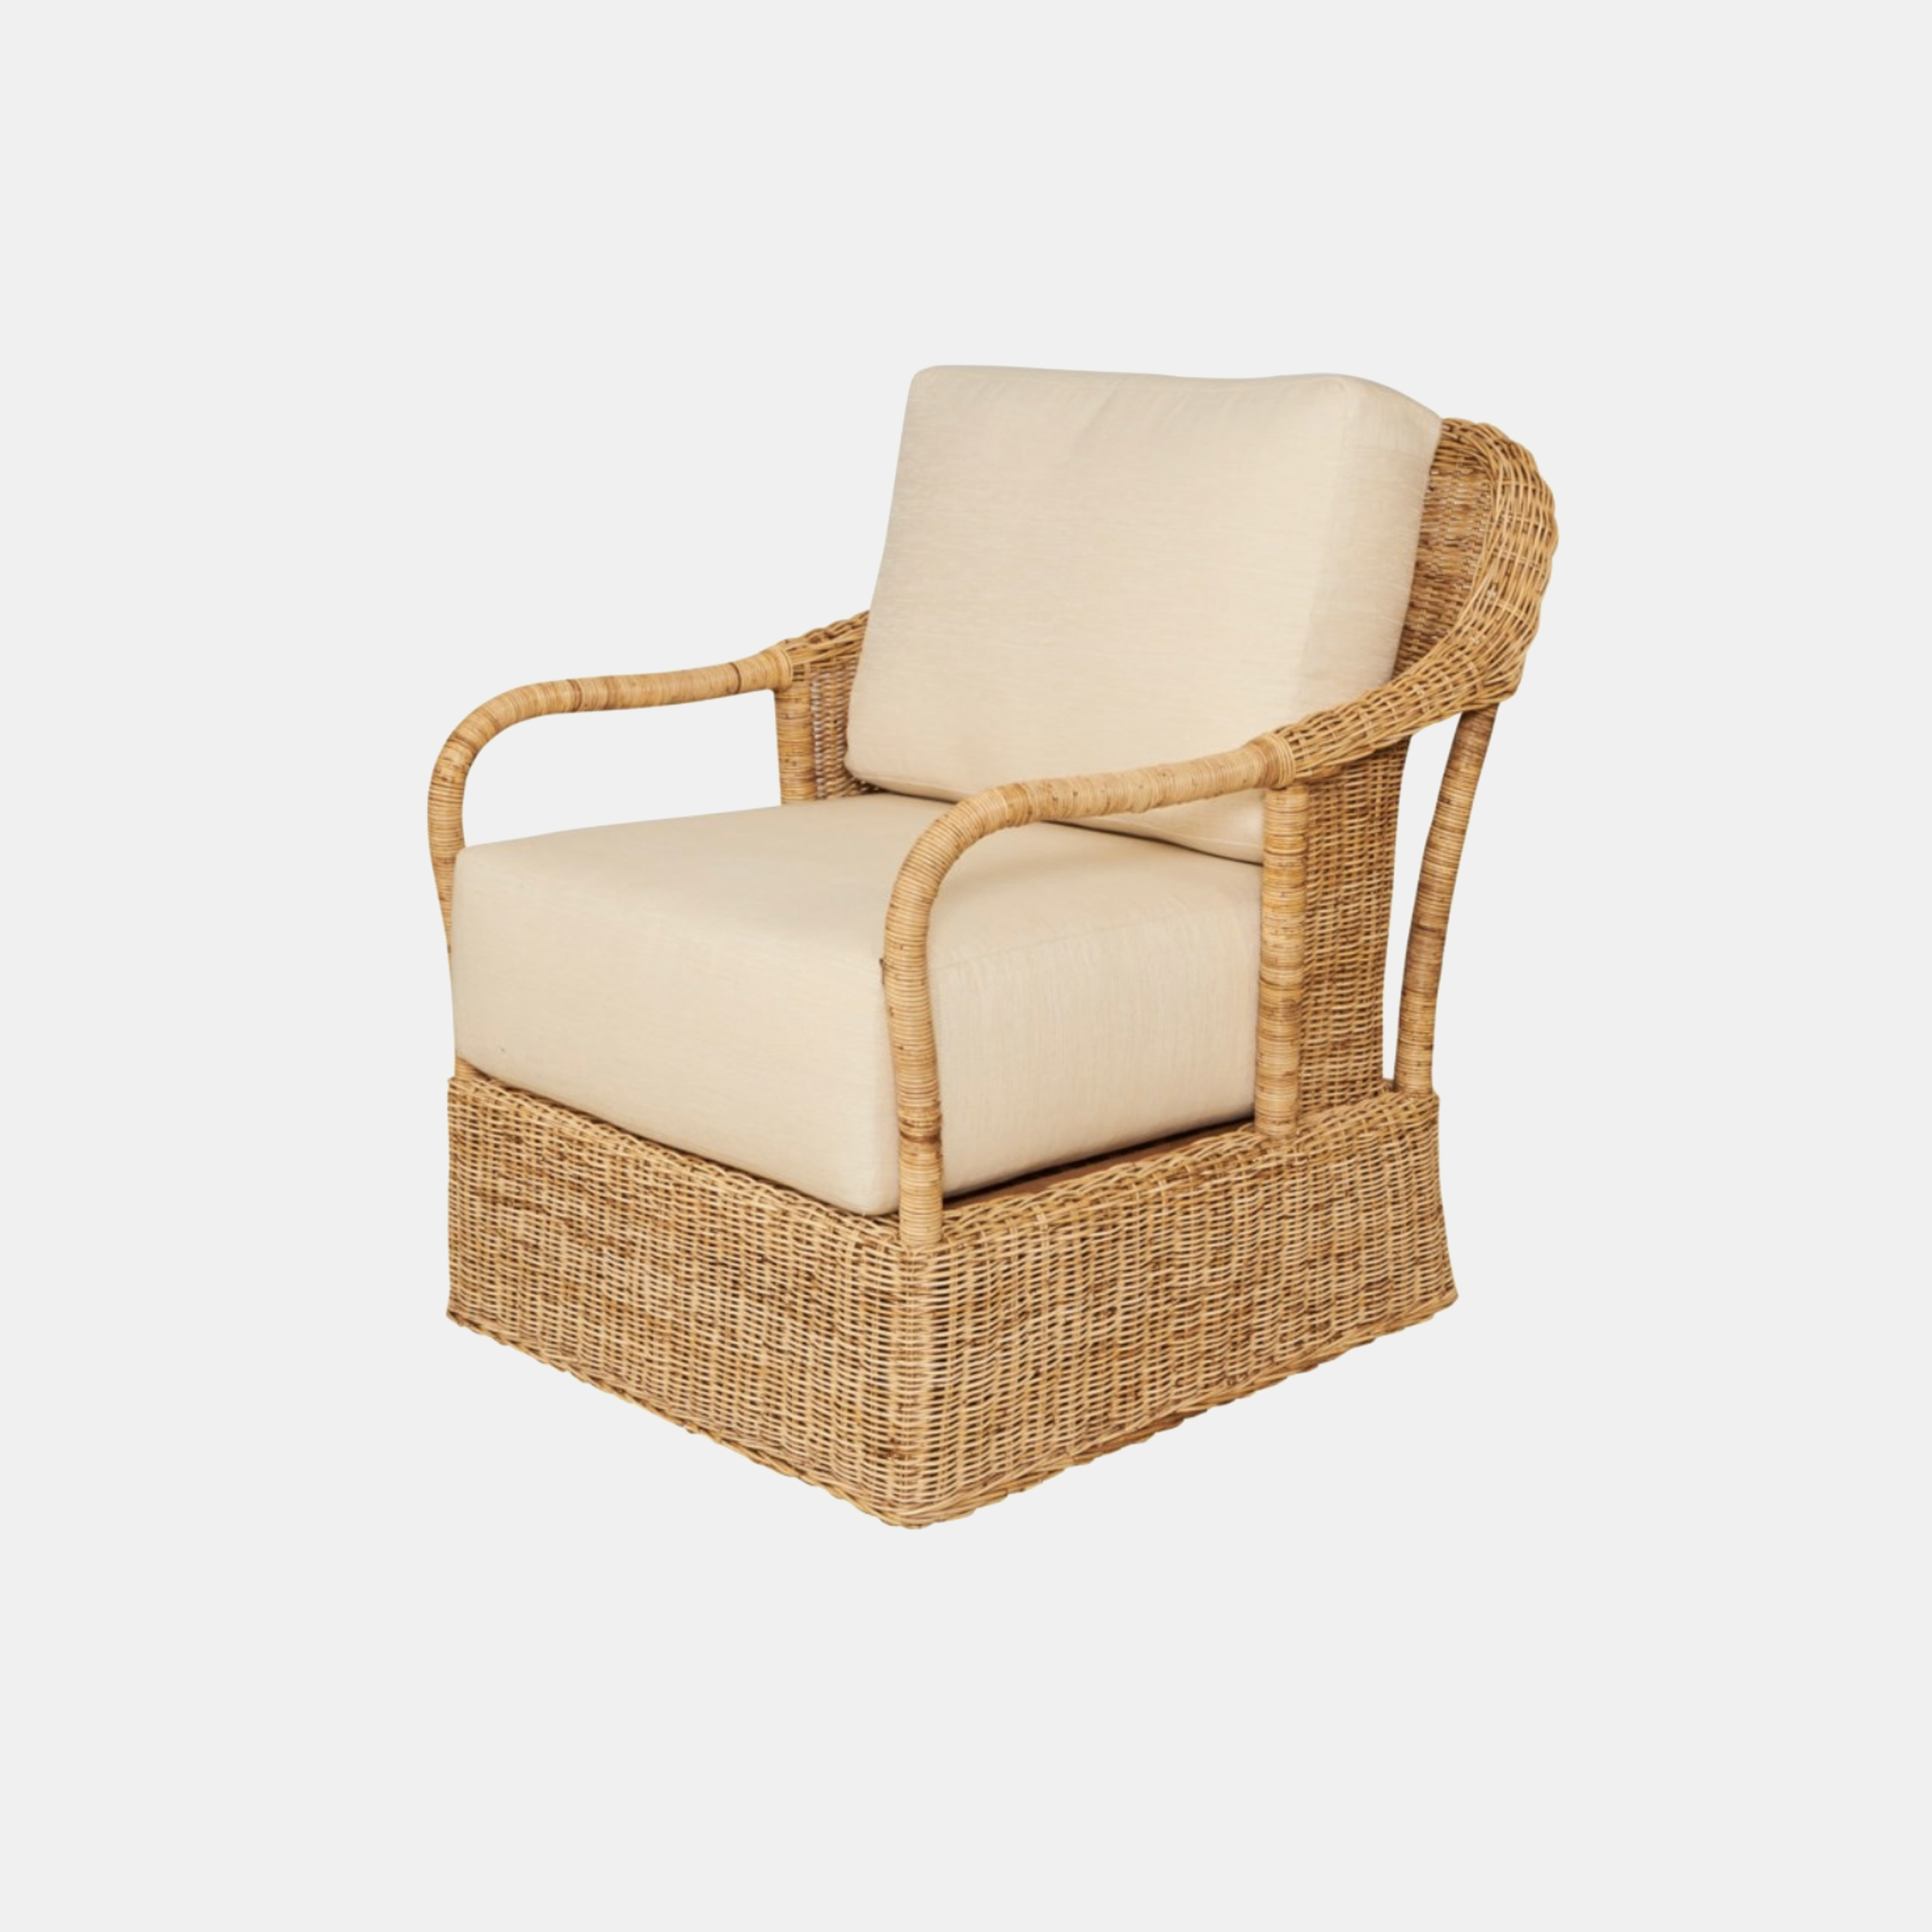 Desmona Lounge Chair  30.25'' x 32'' x 34'' Also available as sofa. SKU18456SLM